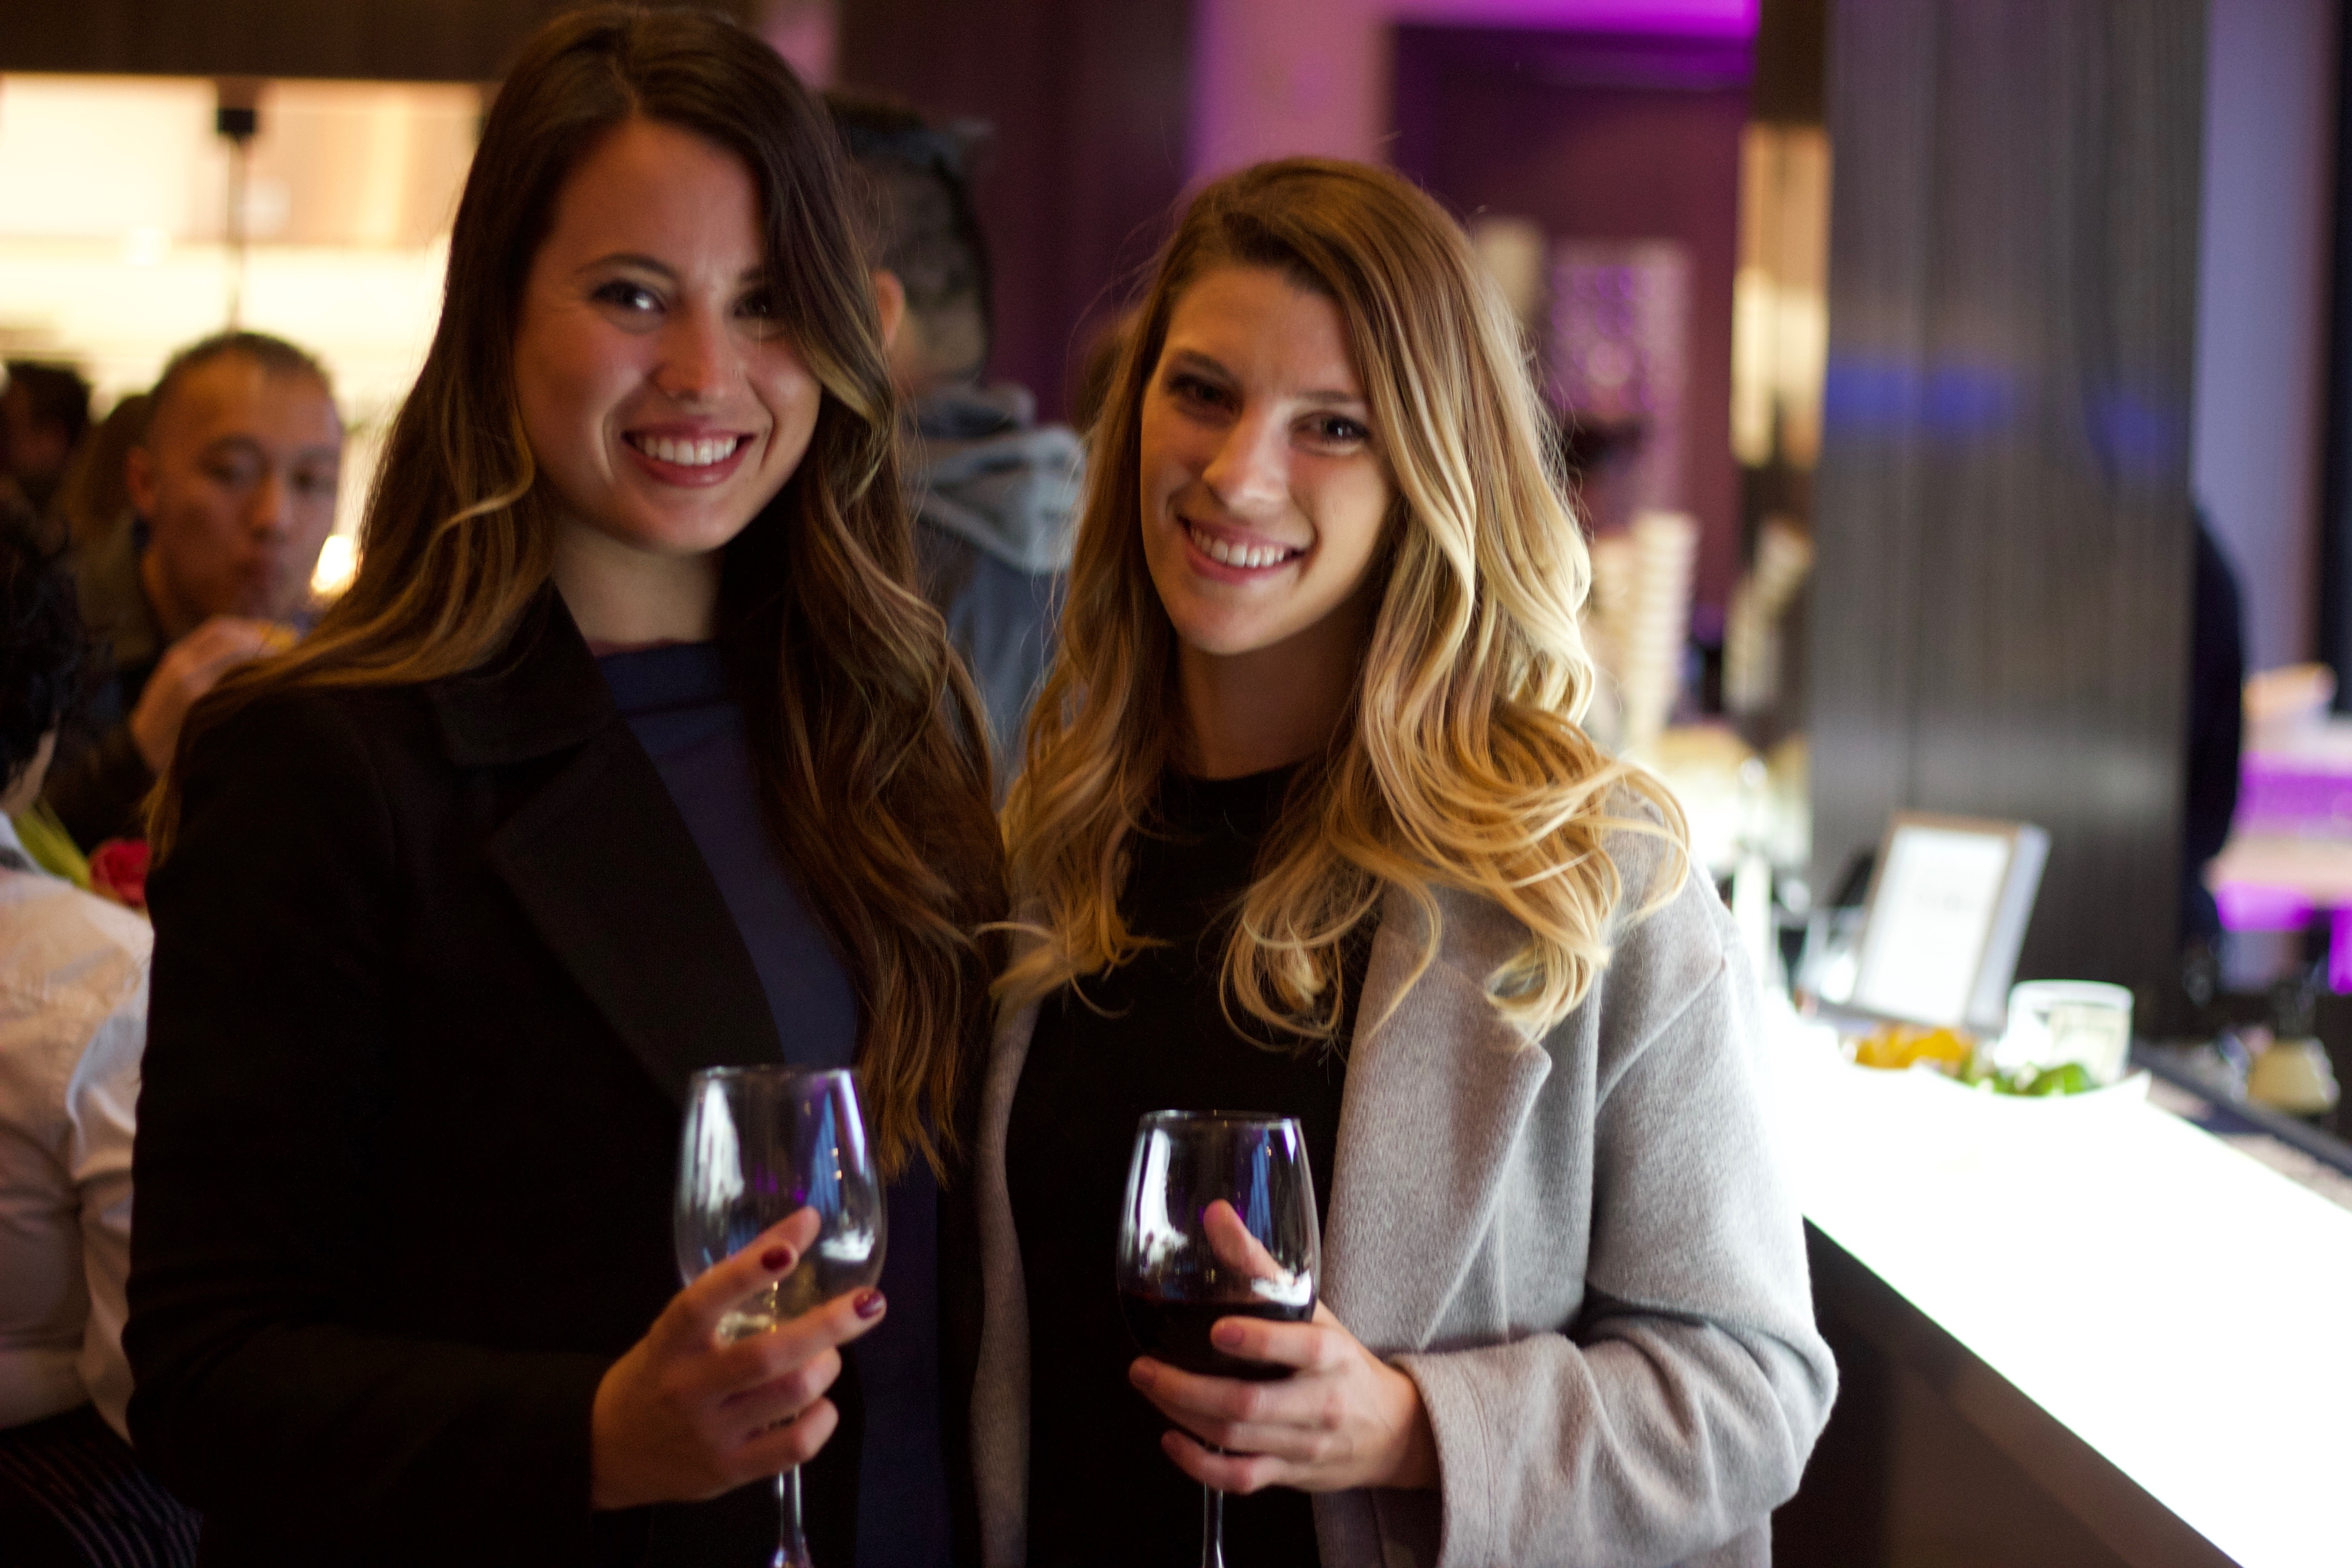 Enjoying a glass of wine at the Chateau Le Parc Vaughan Banquet Hall Vineyard Restaurant food blogger event!